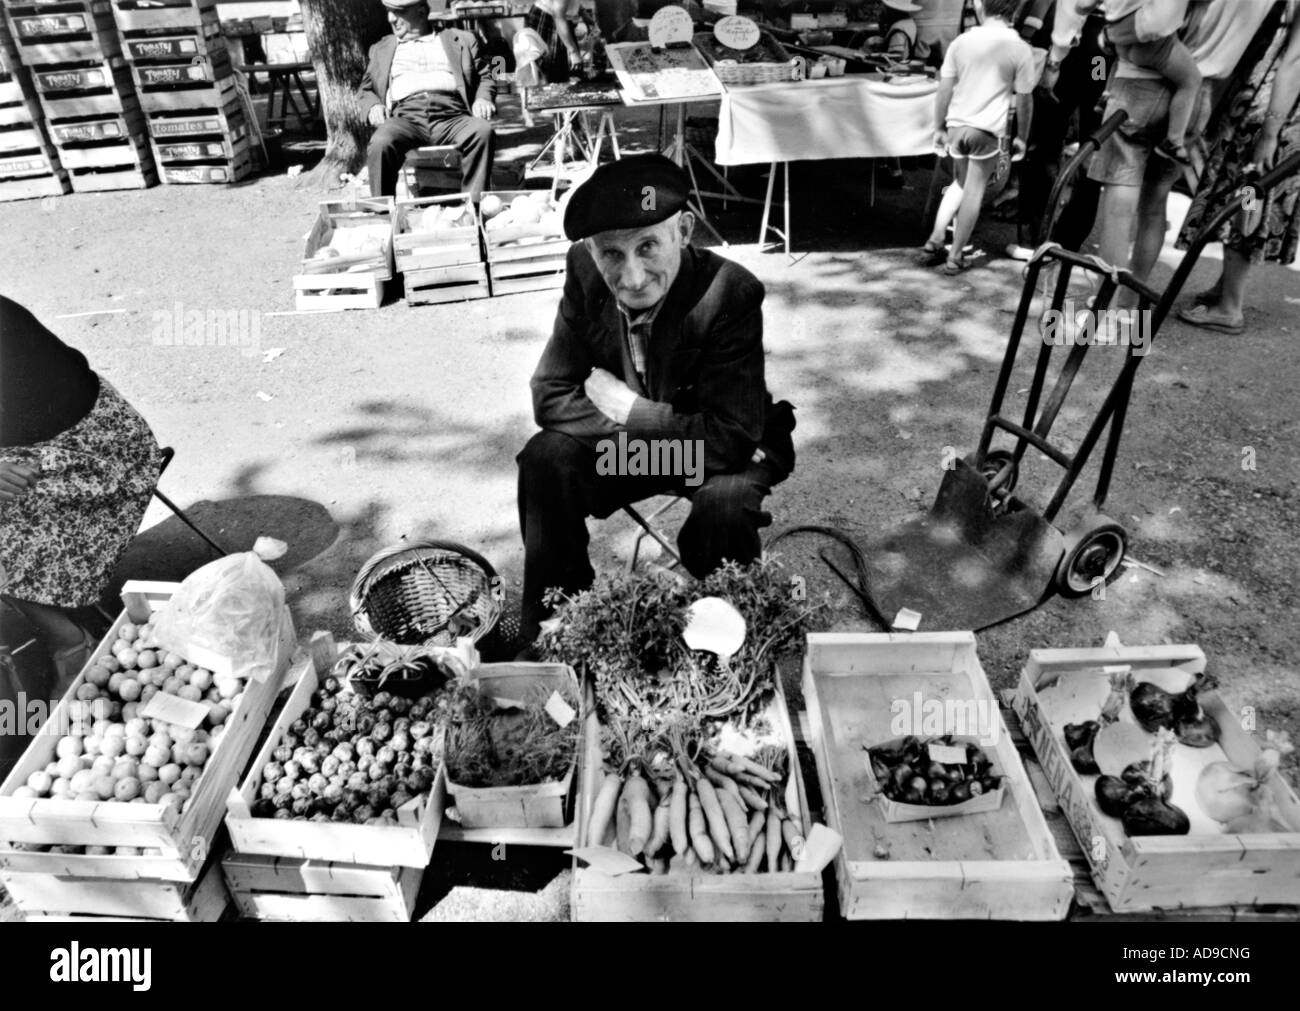 no MR street photography man selling vegetable at the market of Caussade in southern France - Stock Image